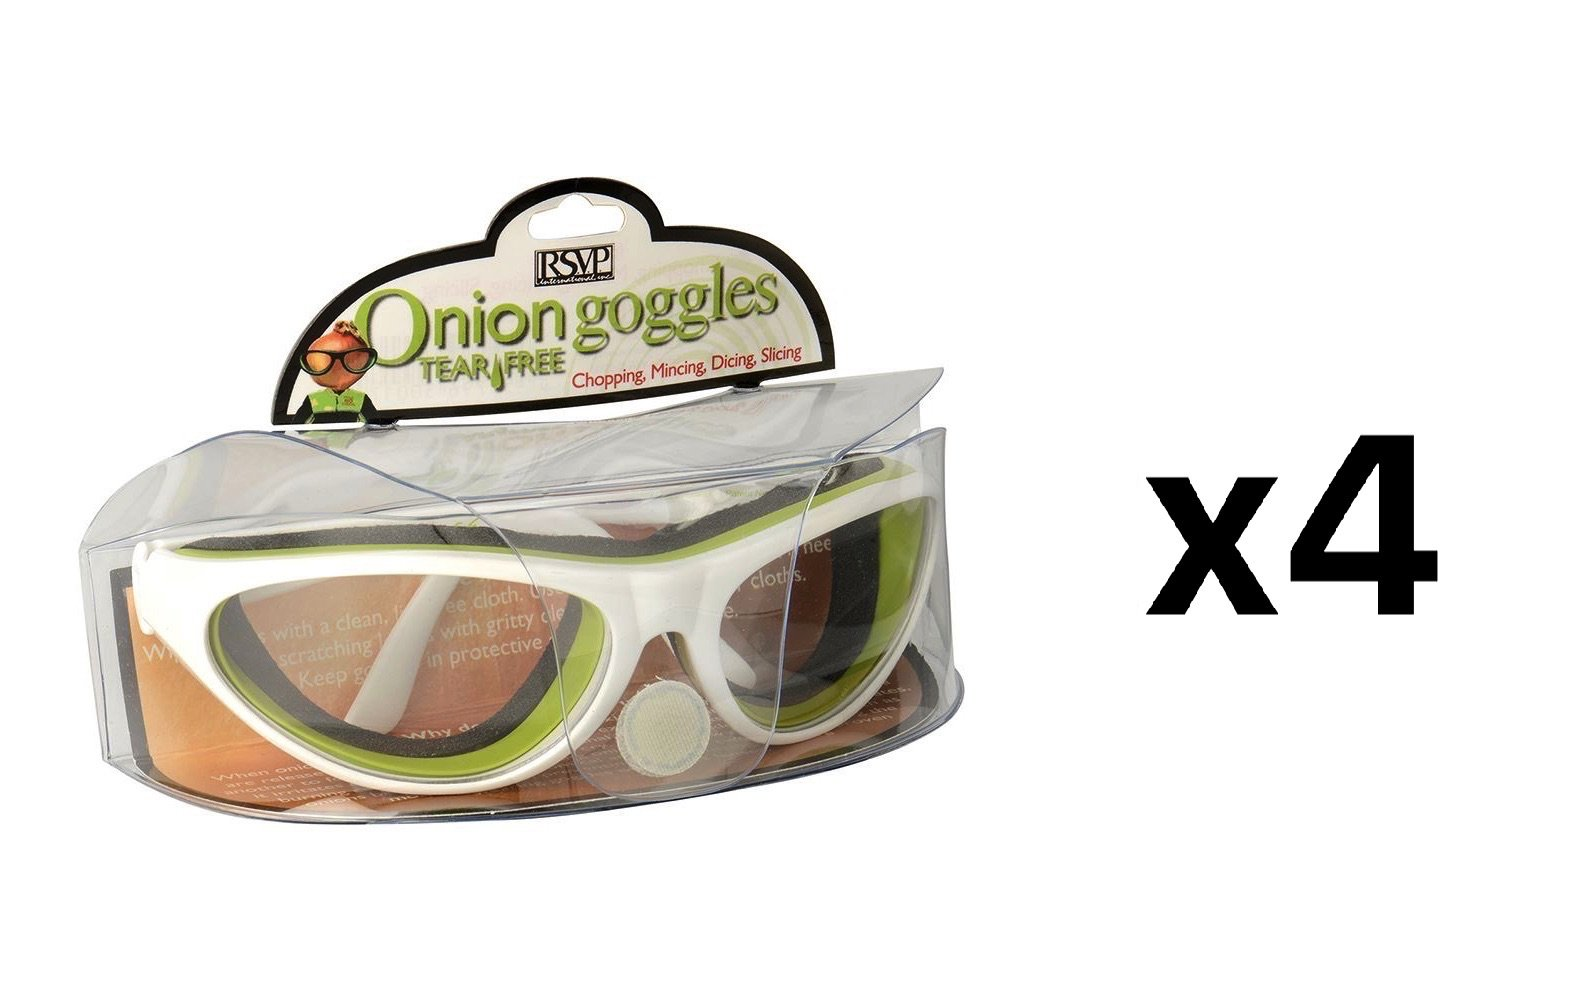 RSVP Onion Goggles w/Case Tear Free Anti Fog Cutting Grilling WHITE (4-Pack)